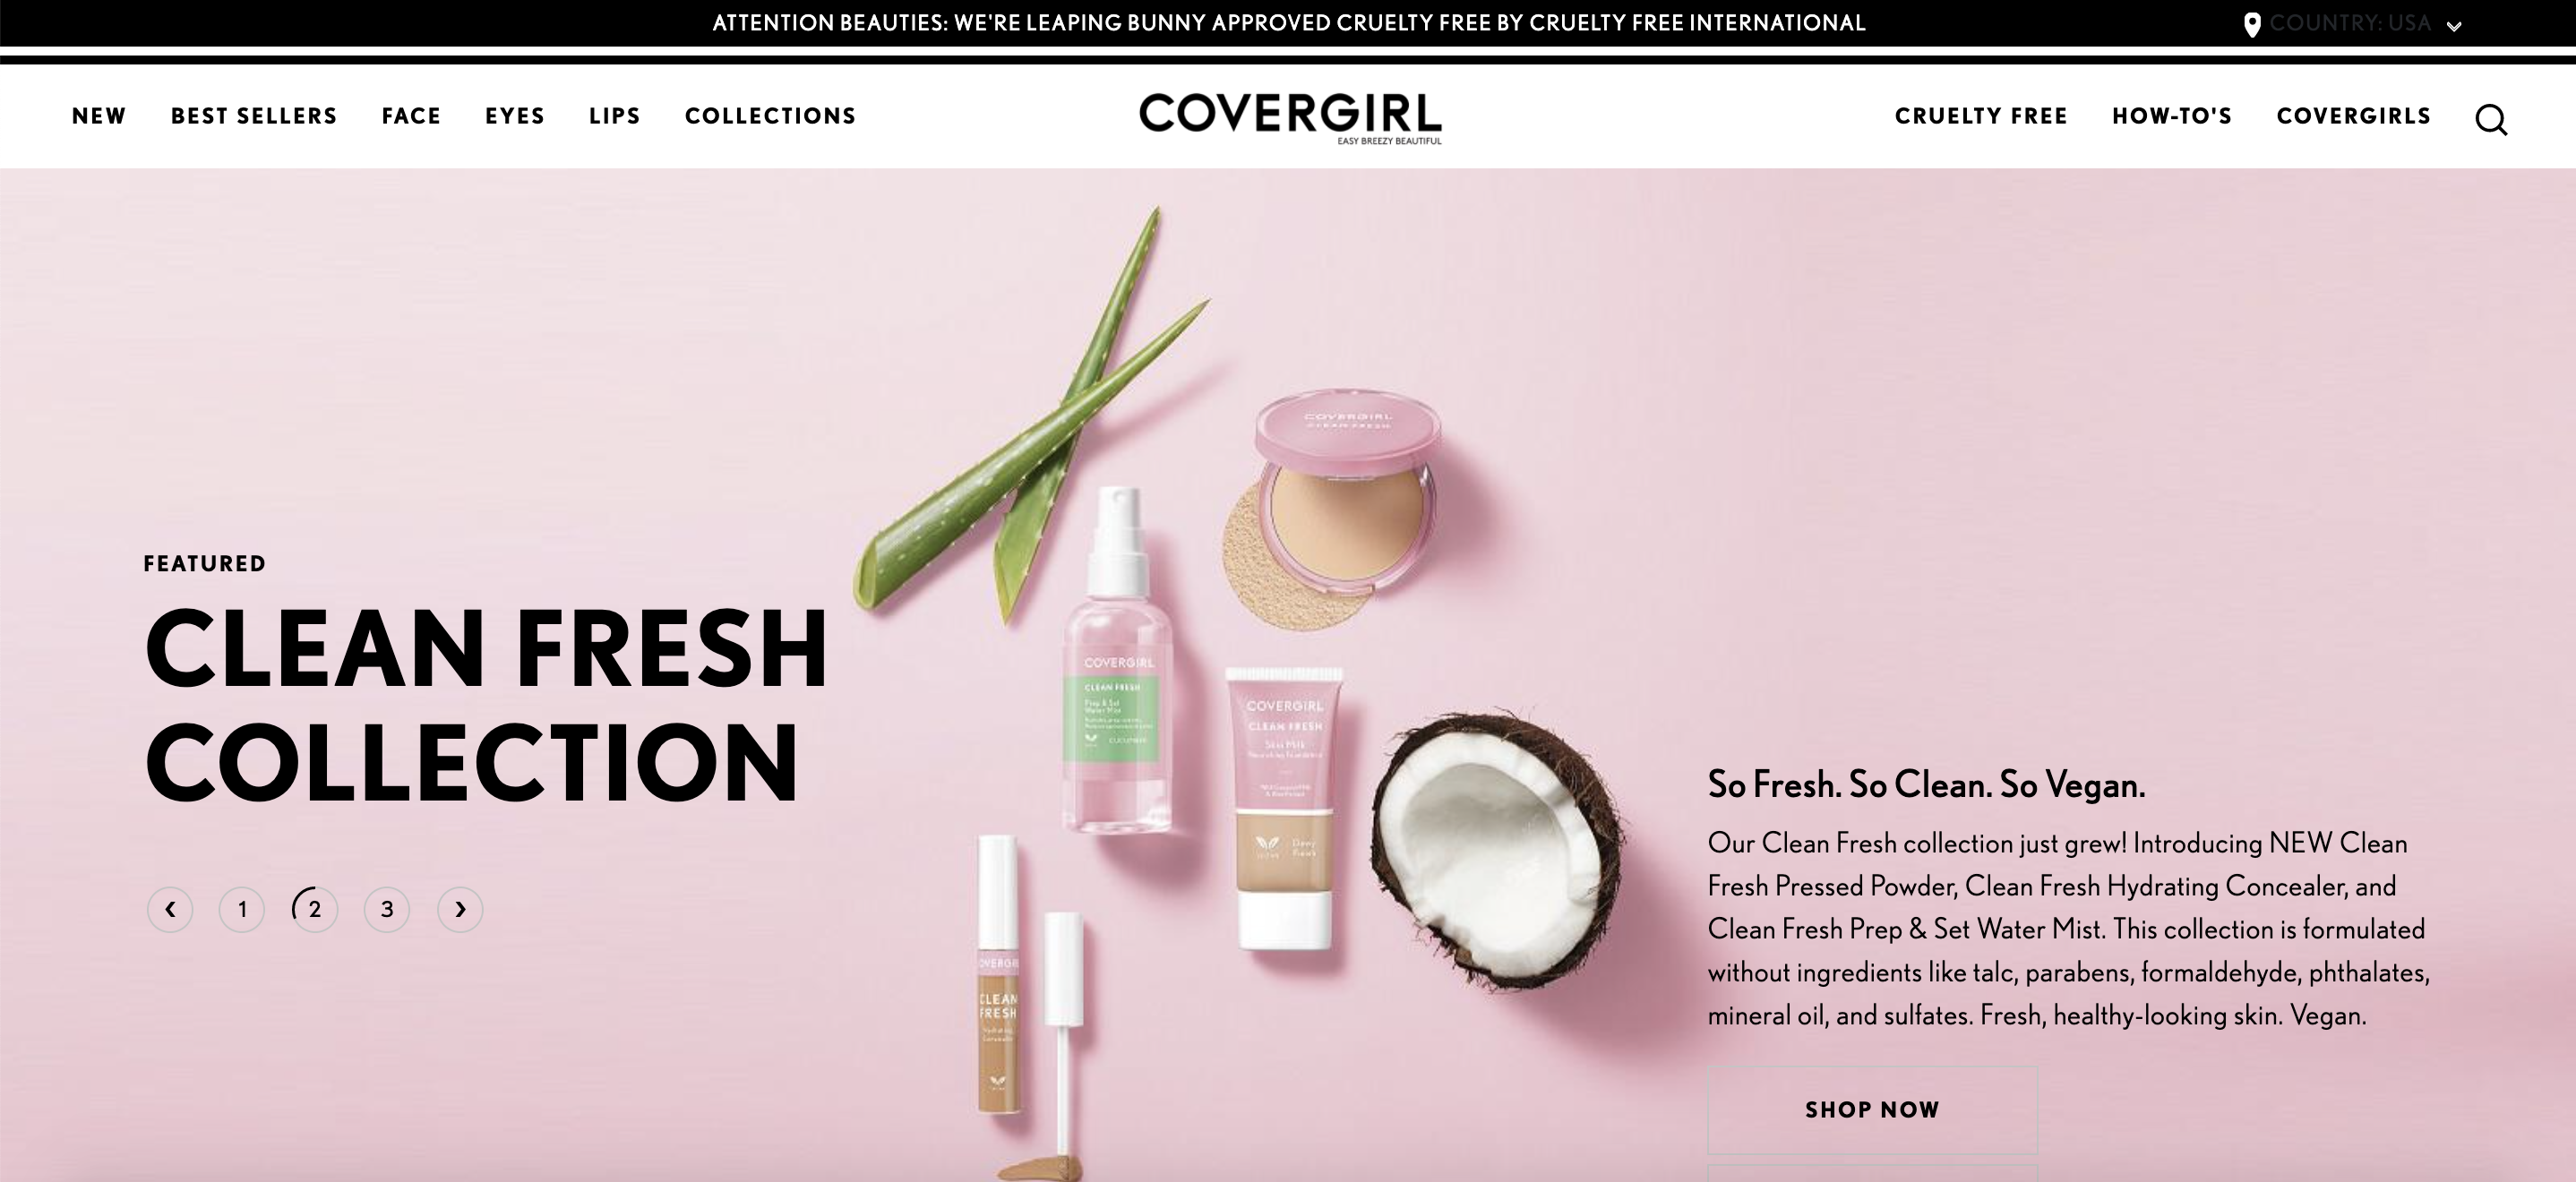 Covergirl's homepage